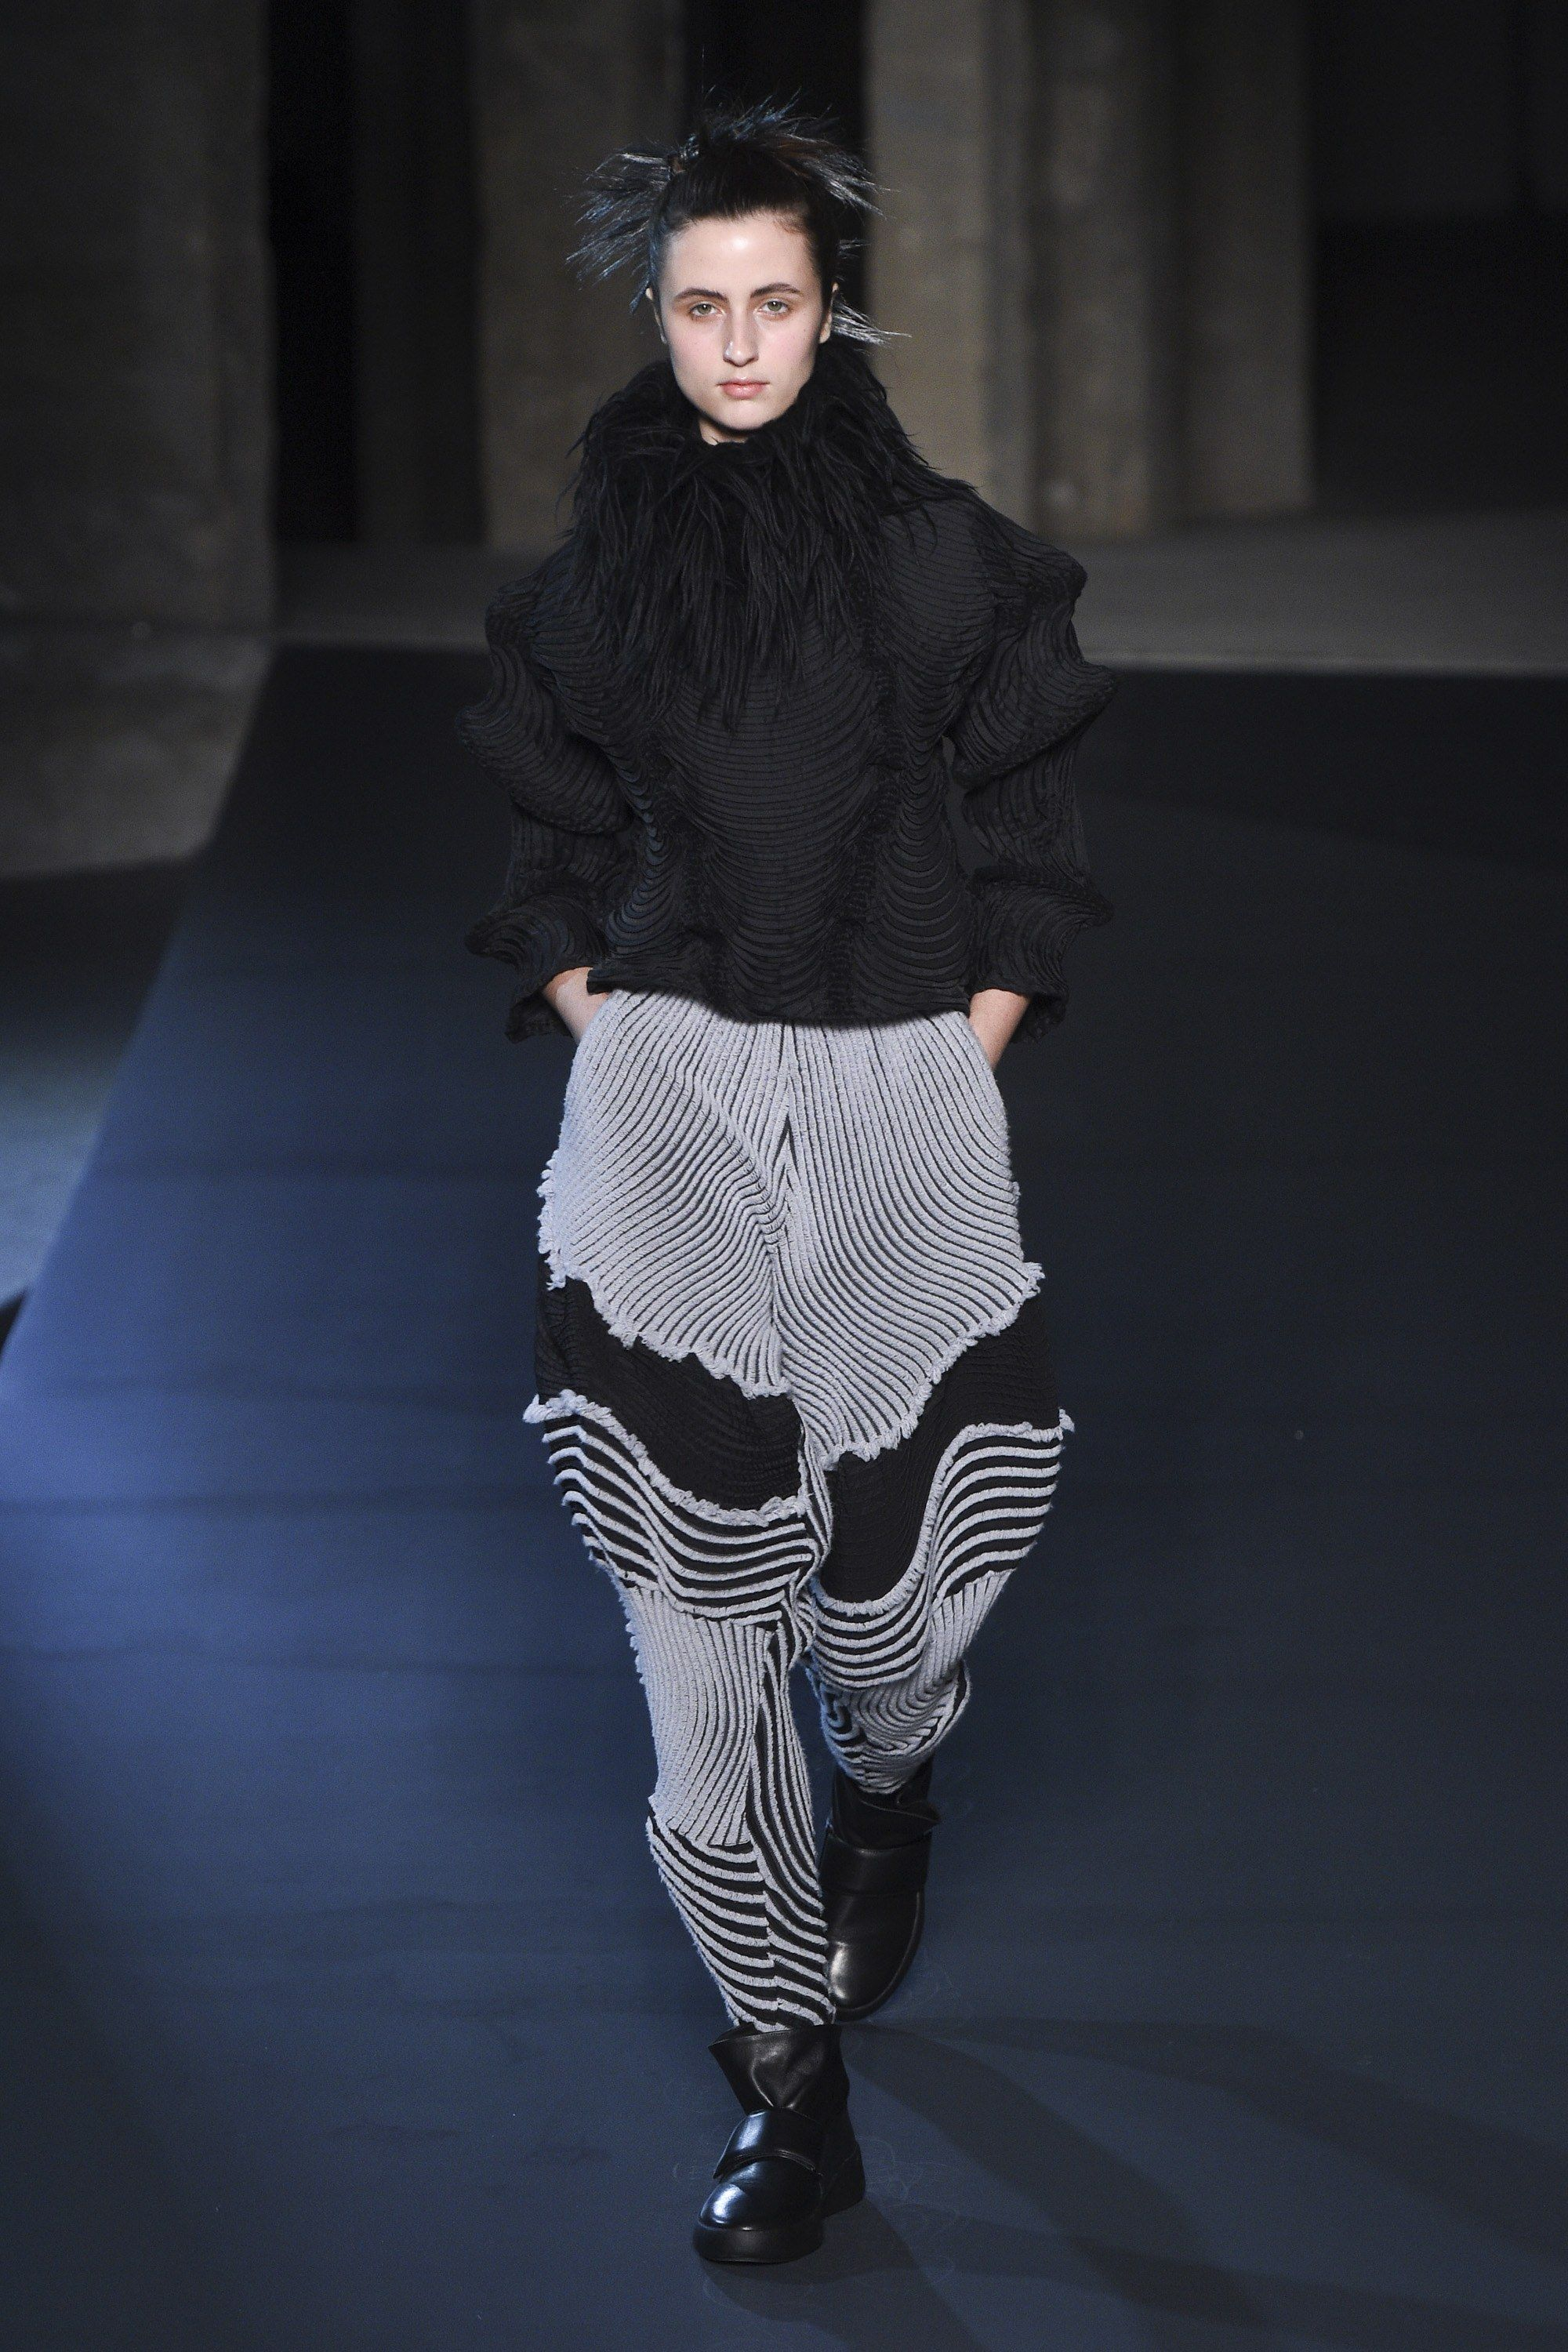 c89be74c86e4 Issey Miyake Fall 2018 Ready-to-Wear Collection - Vogue